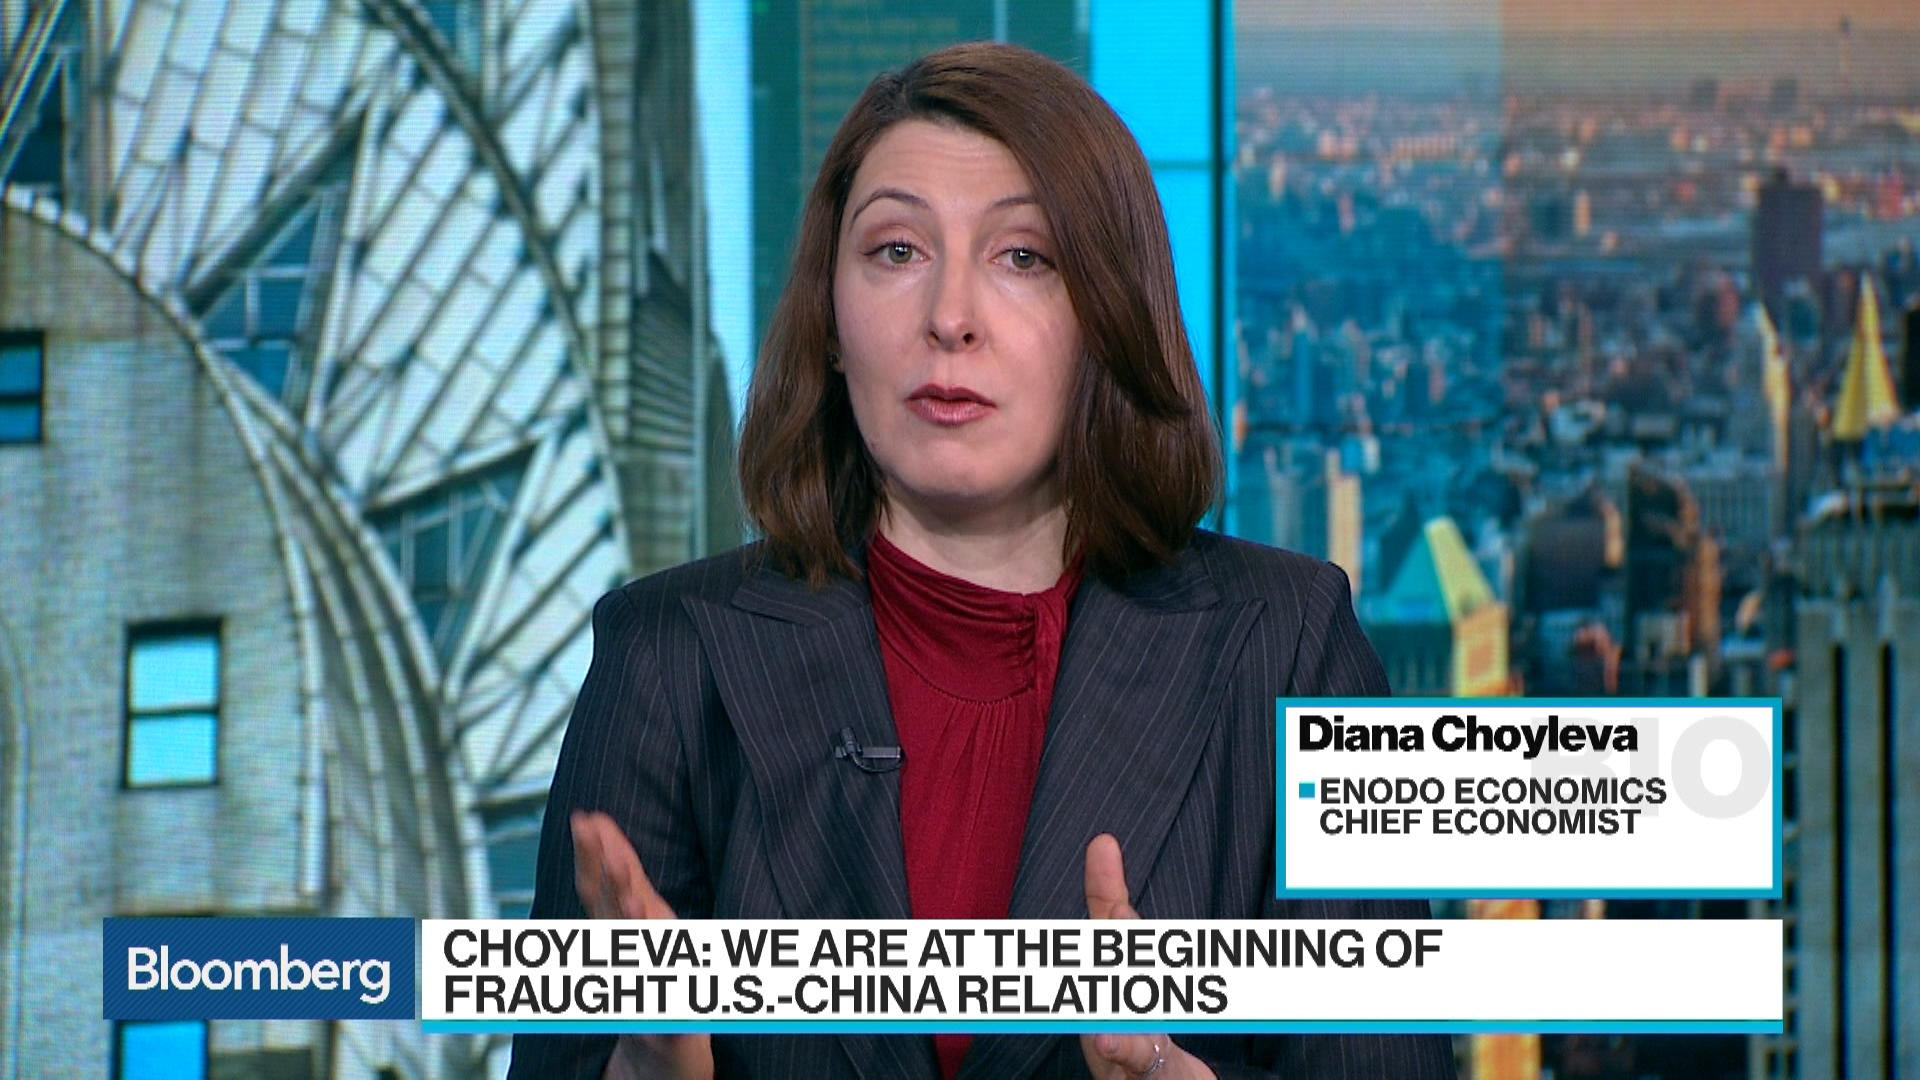 Diana Choyleva Says Globalization Has Been All About Including China